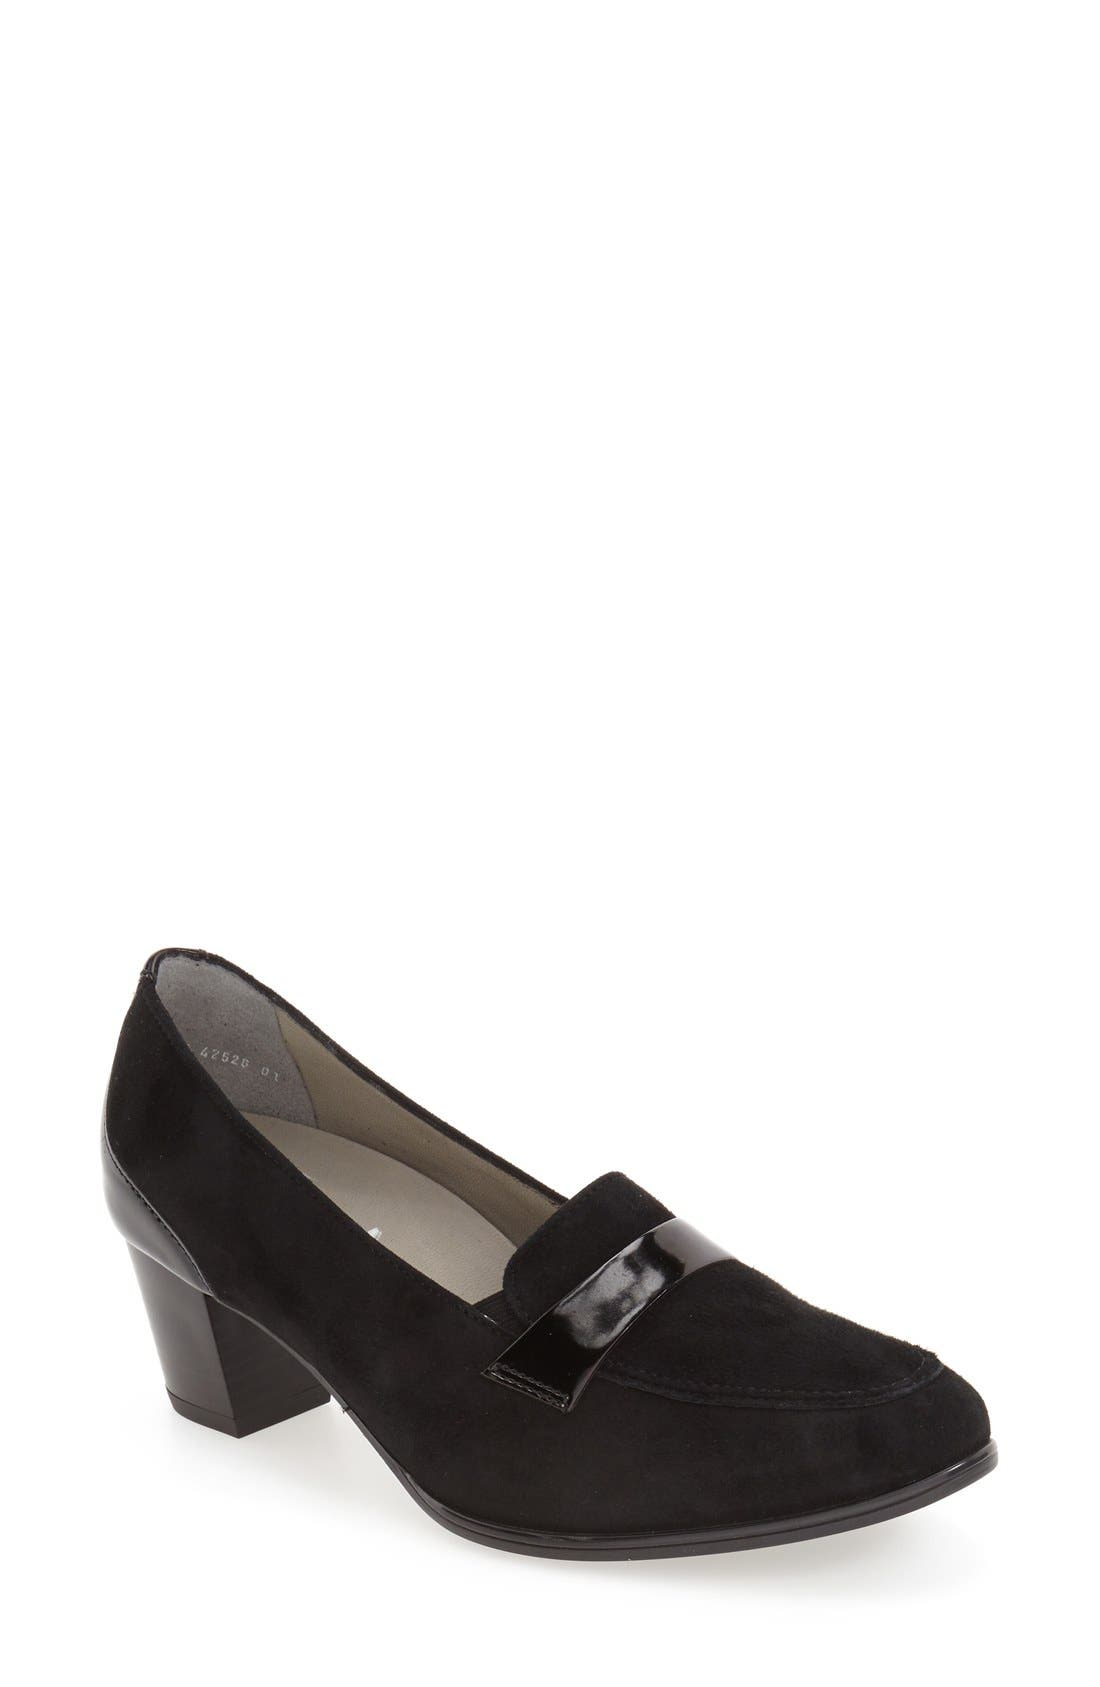 Alternate Image 1 Selected - ara 'MarryAnn' Loafer Pump (Women)